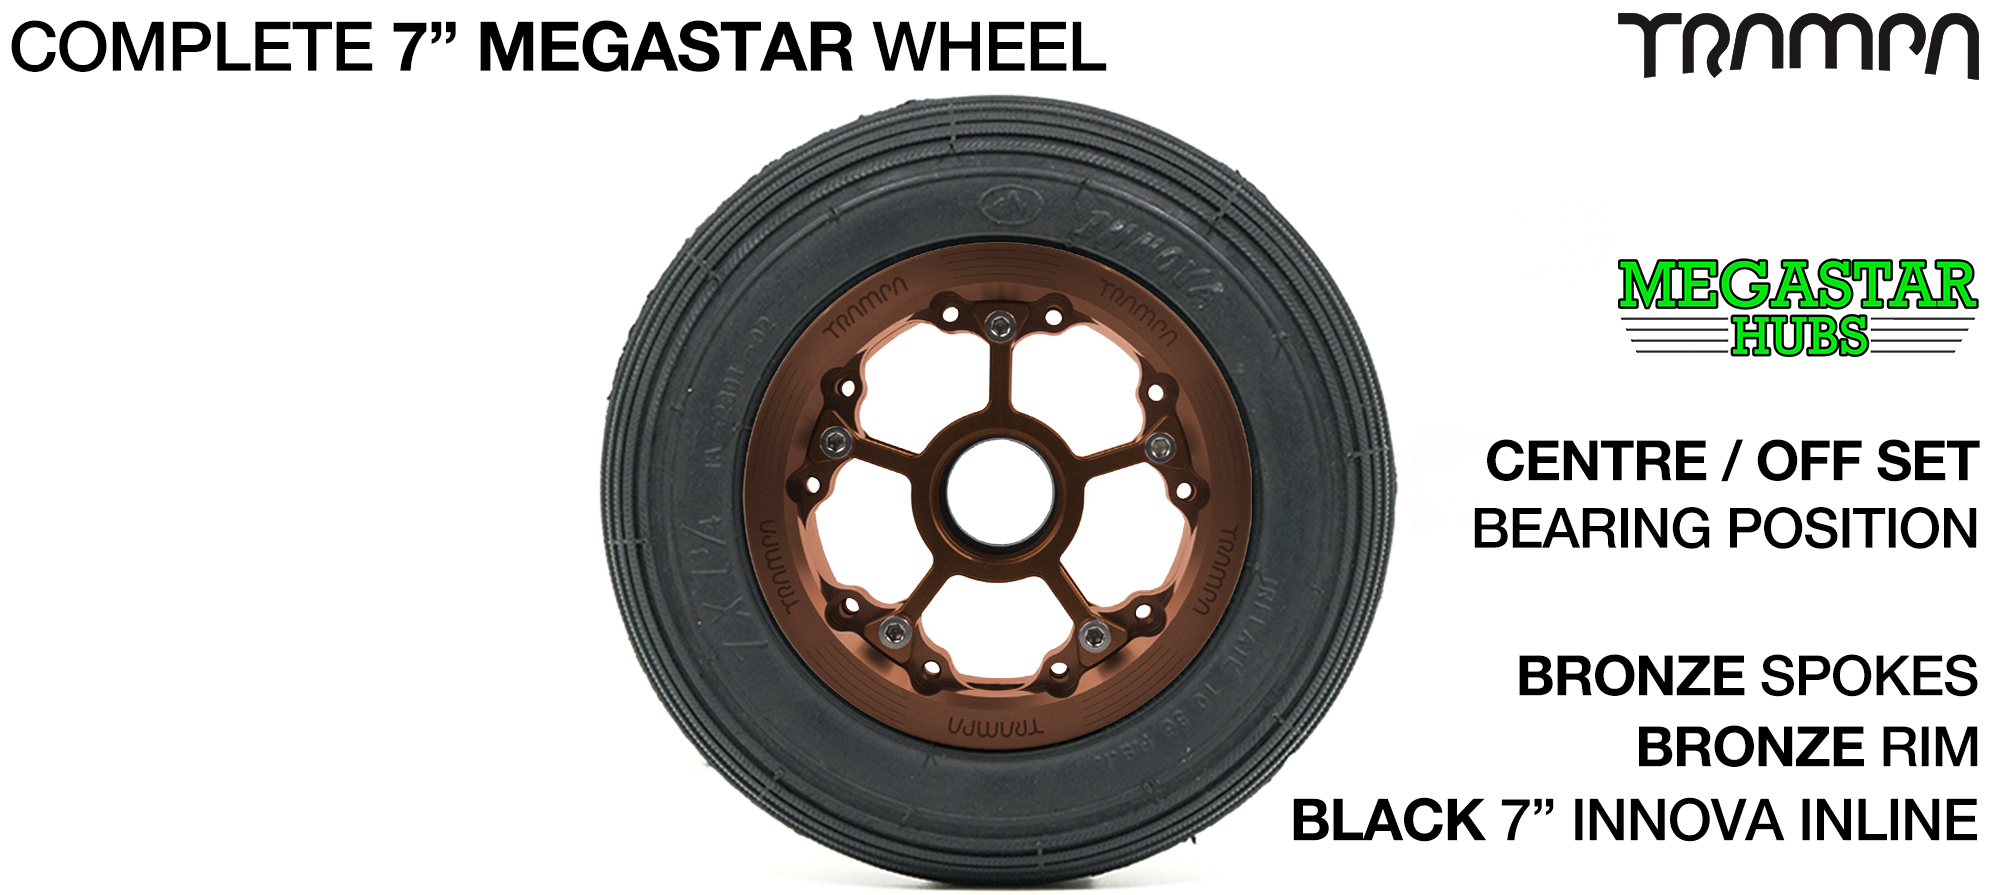 BLACK MEGASTAR Rims with RED Spokes & 7 Inch Tyres